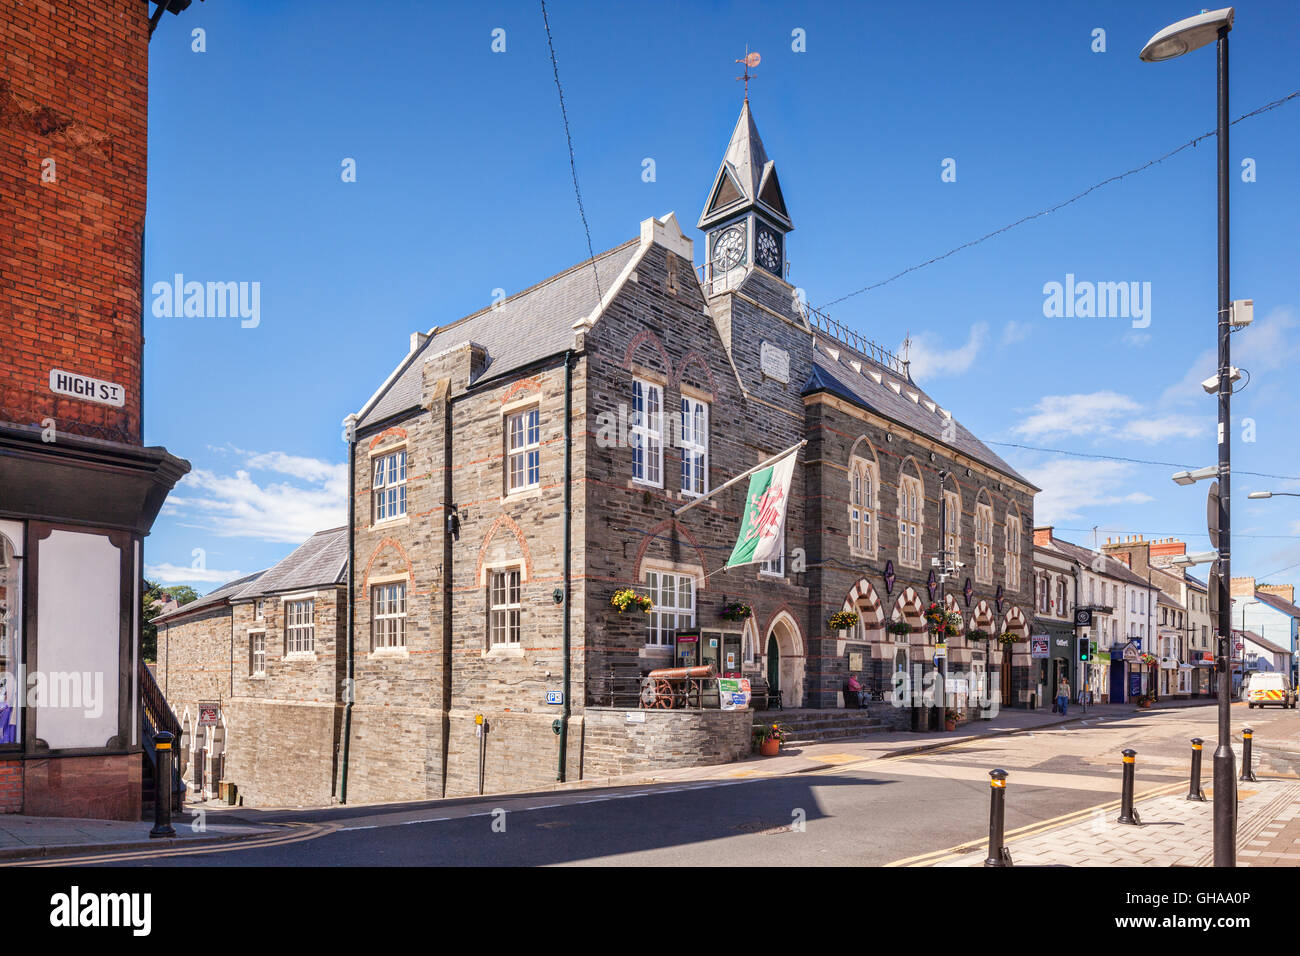 Cardigan High Street and Town Hall, Wales, UK - Stock Image